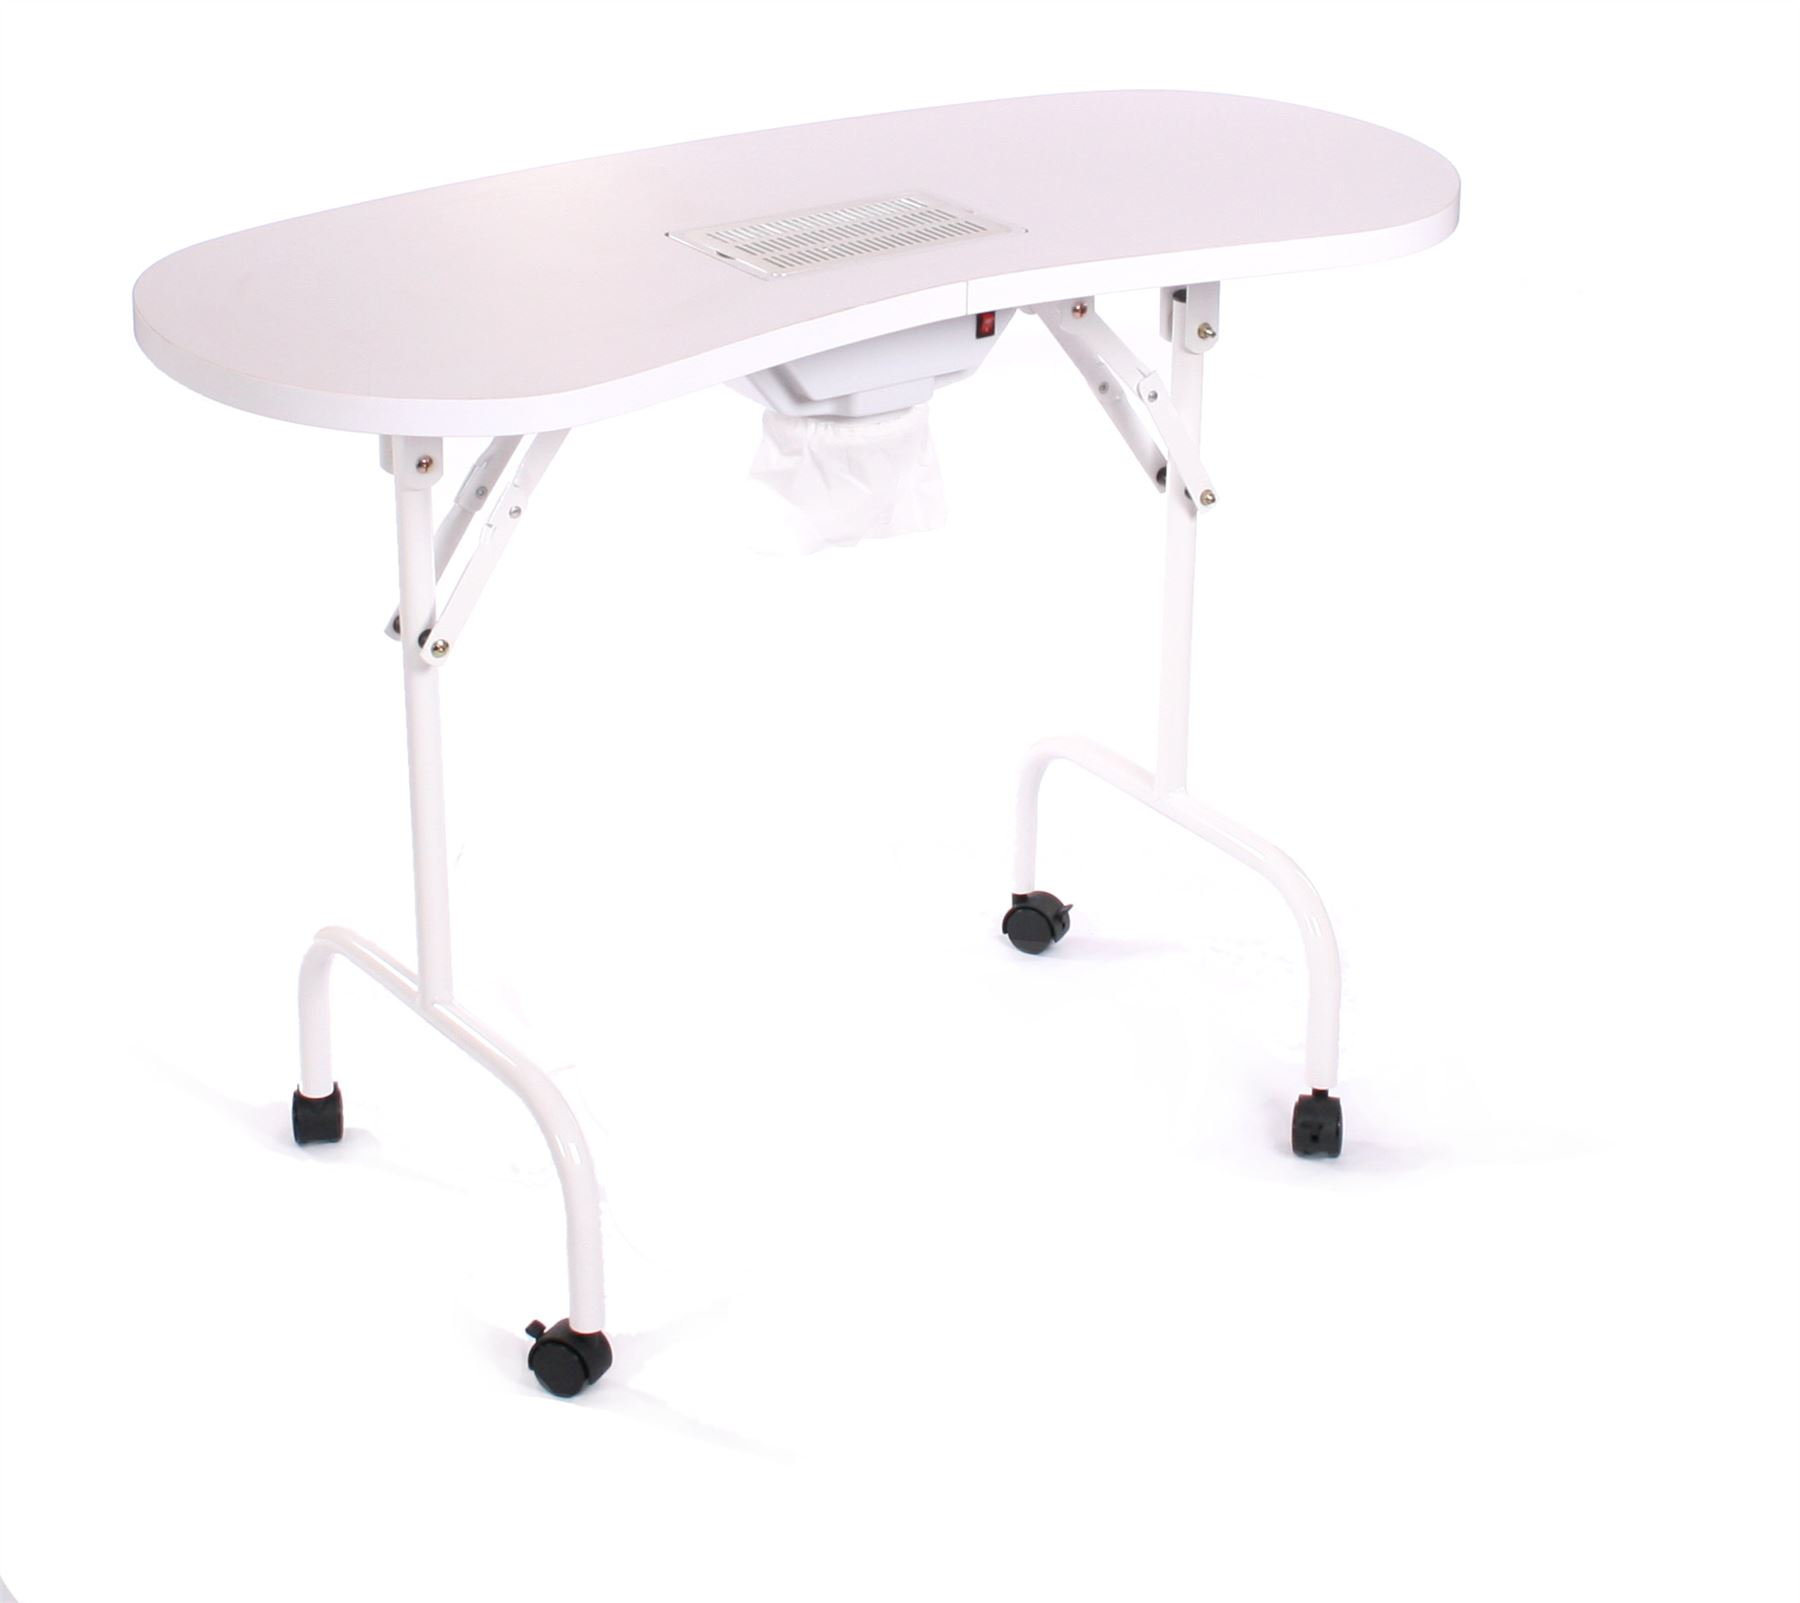 design for china manicure new and furniture nail salon table lcunikrjhikj beauty sale product